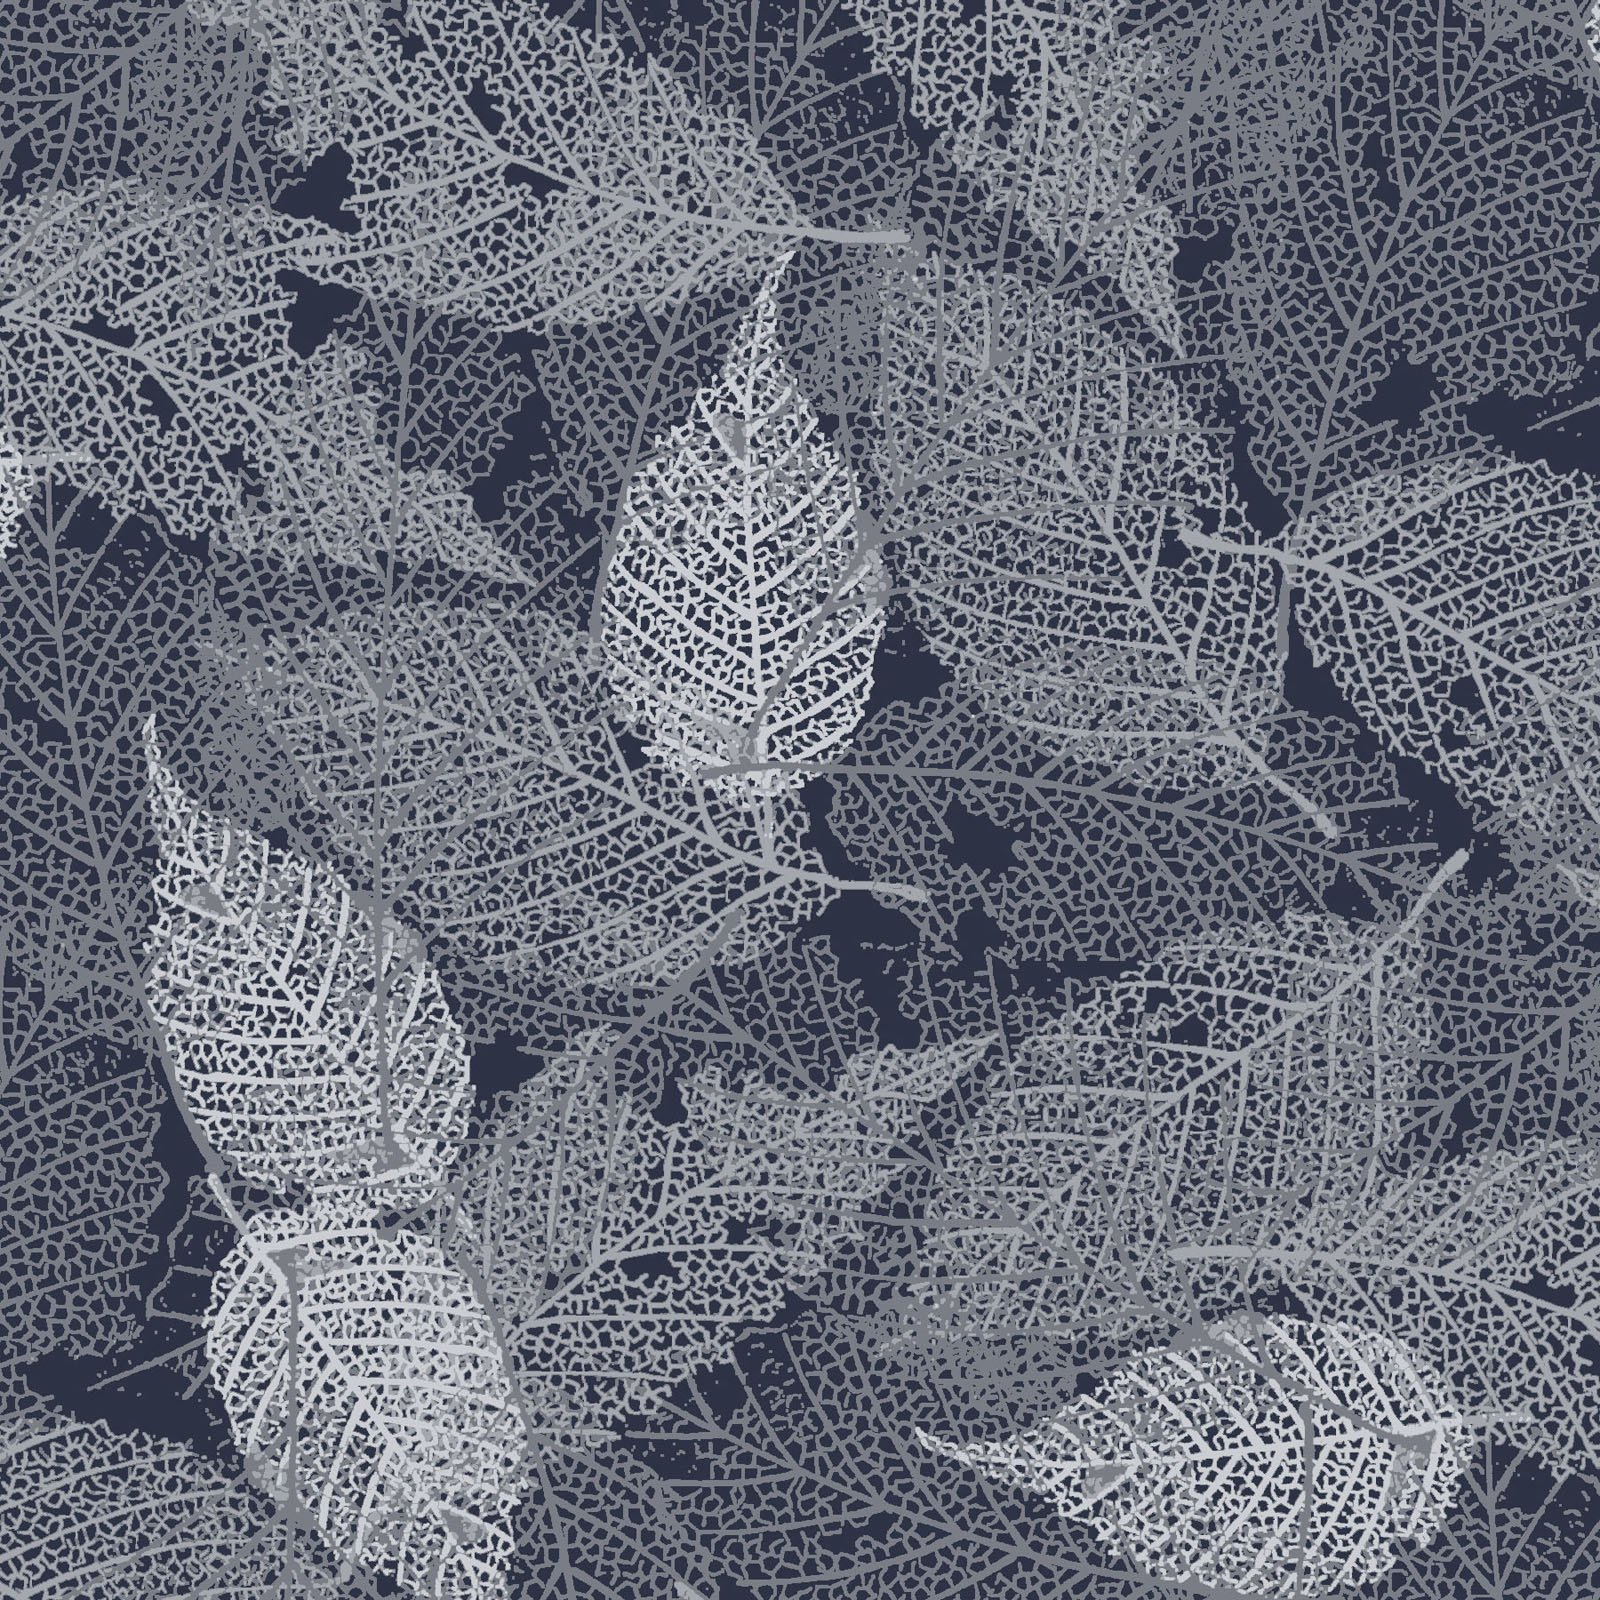 FOLI-4478 S - FOLIAGE BY P&B BOUTIQUE TEXTURE LEAVES SILVER - ARRIVING IN MAY 2021